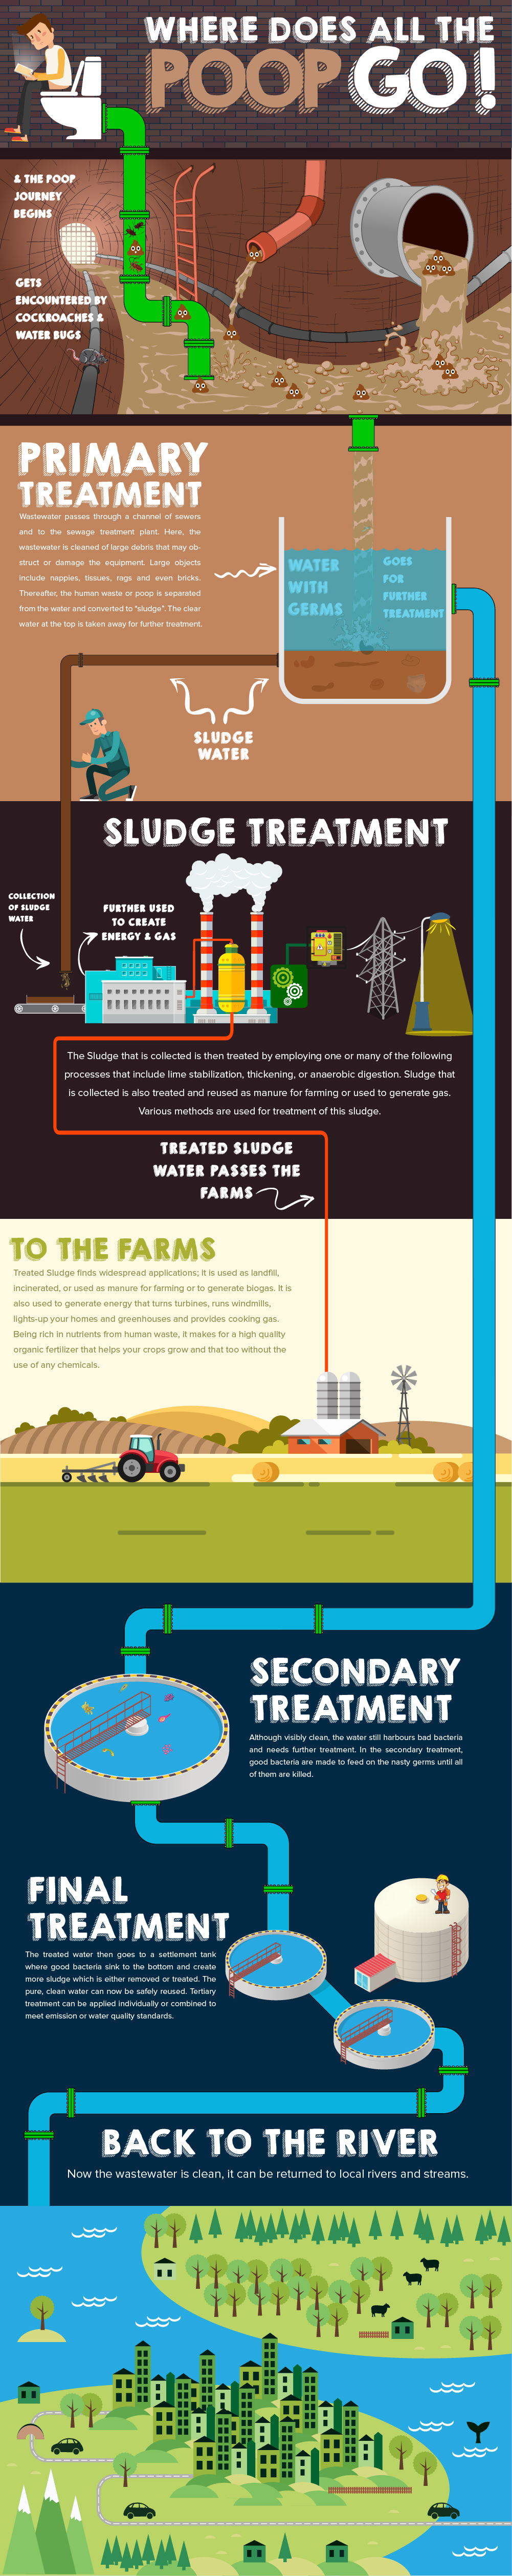 Where does poop go infographic